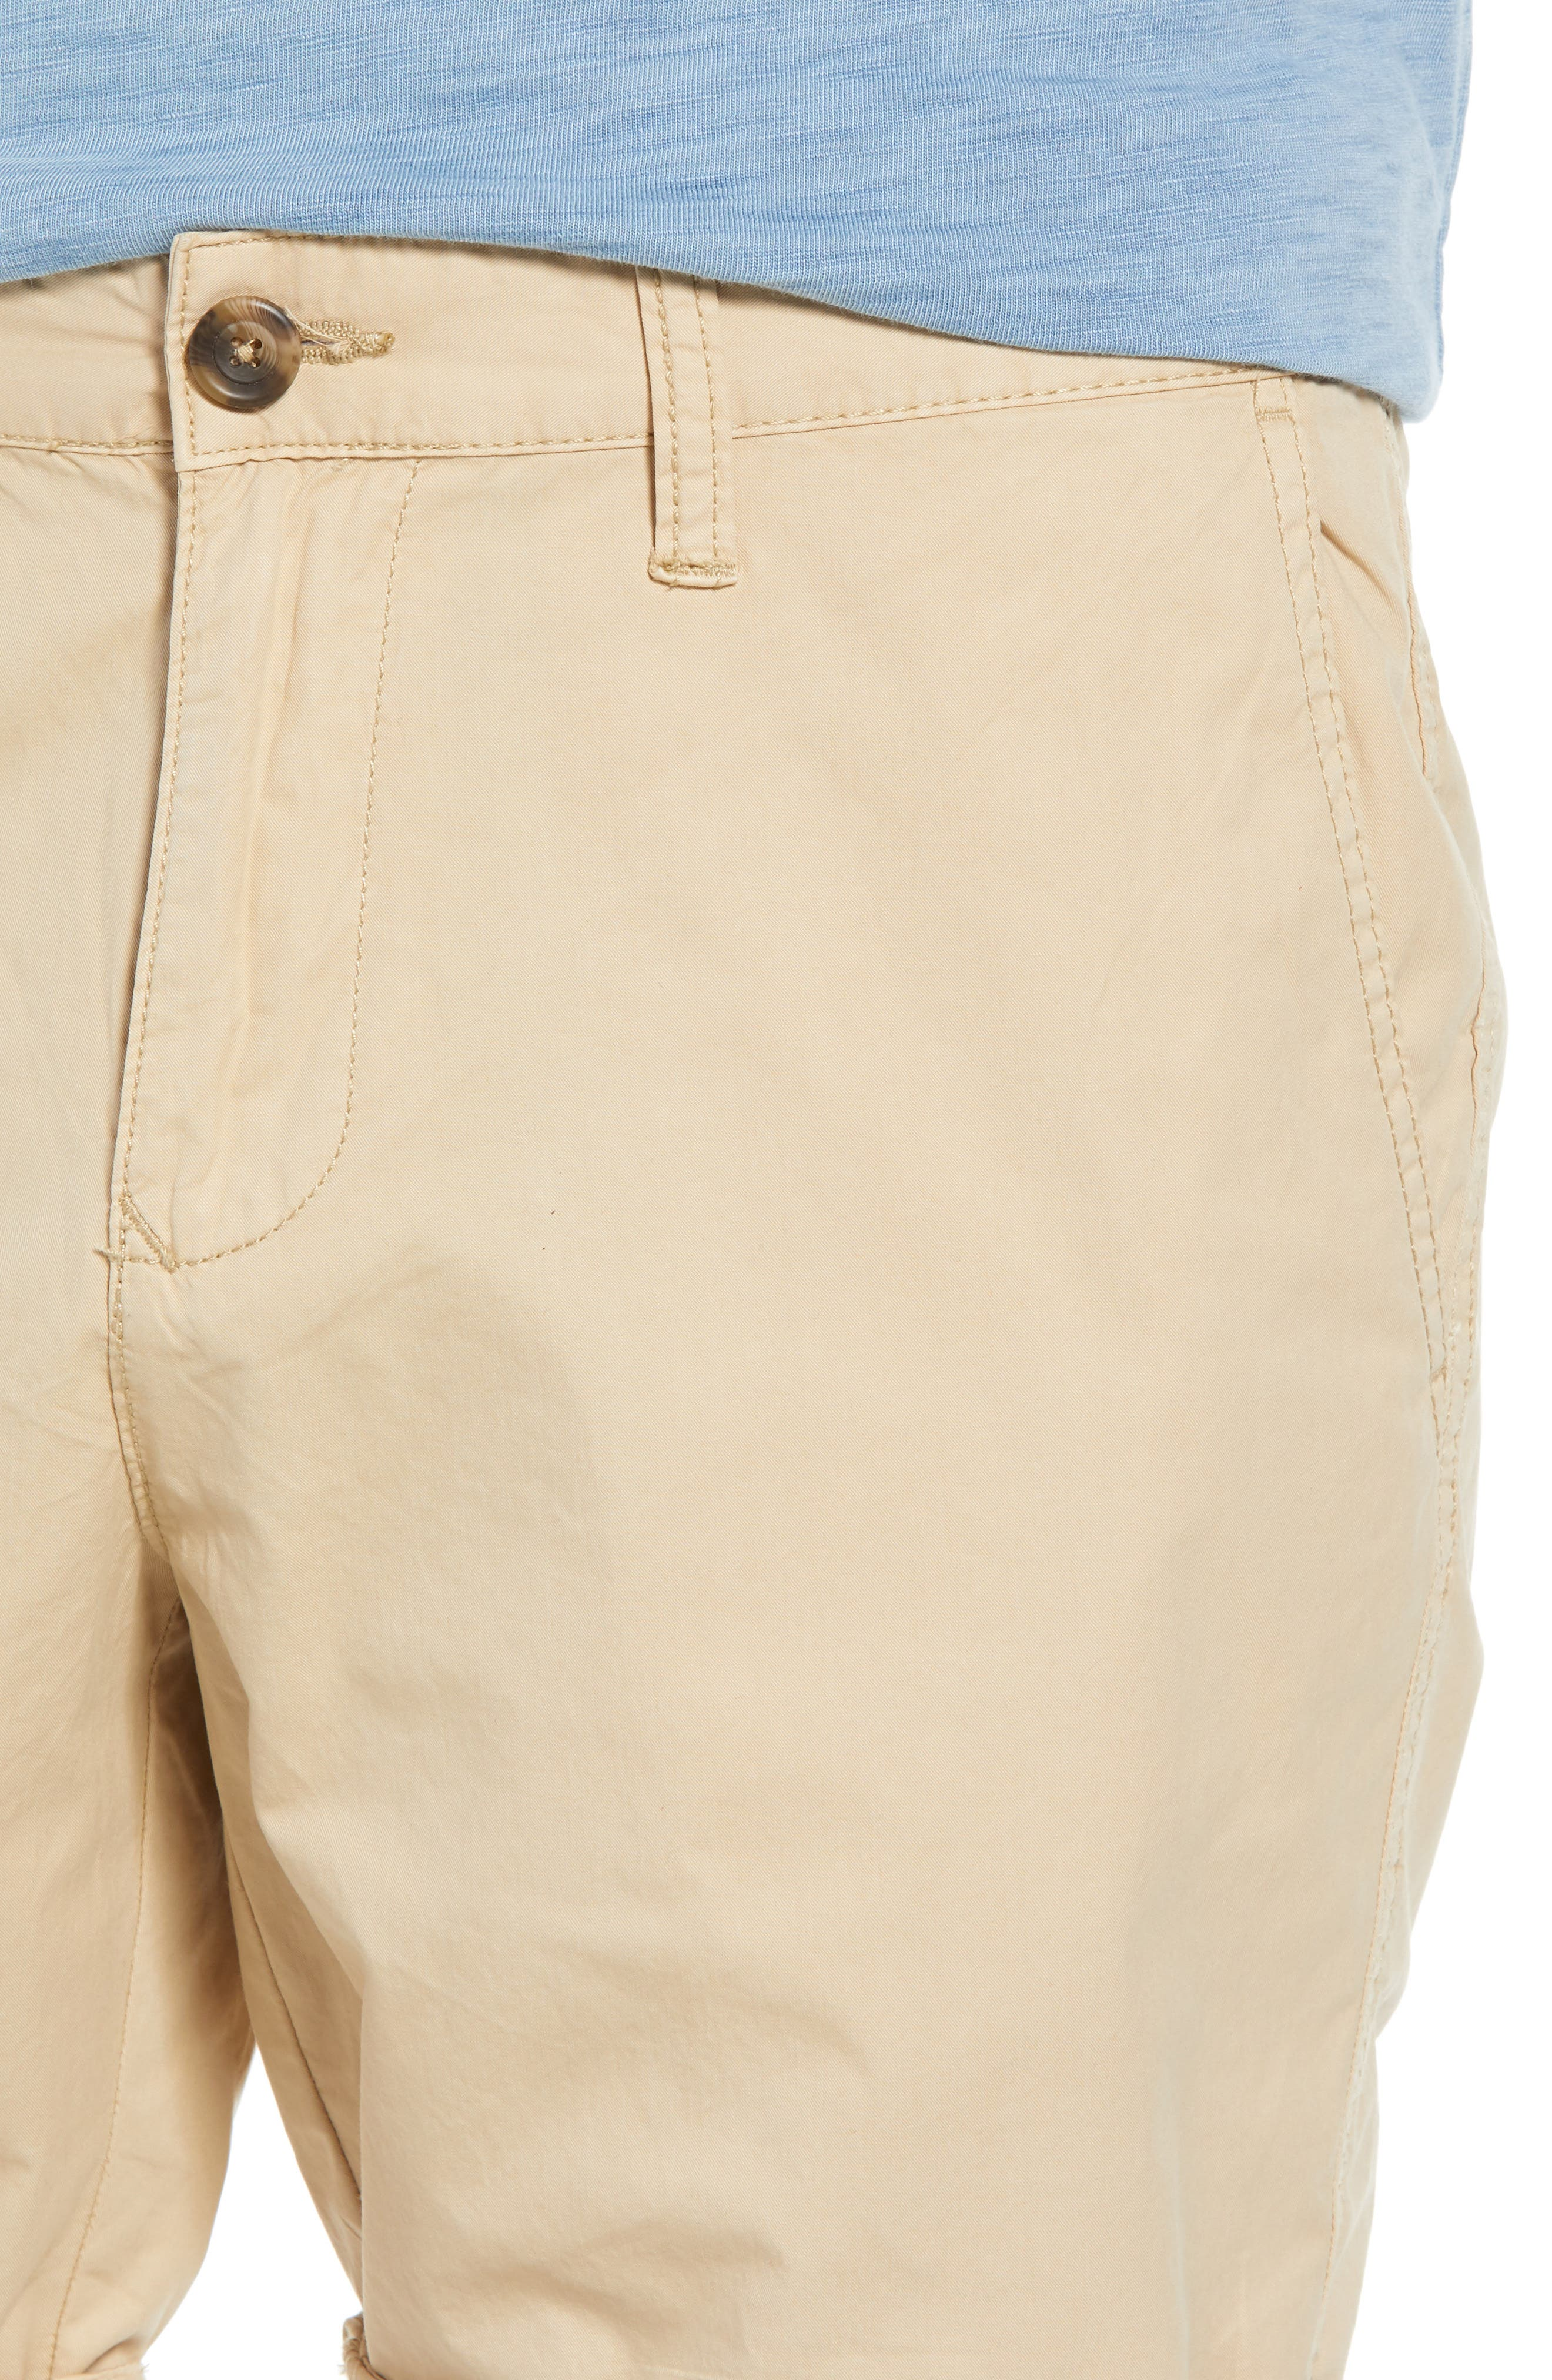 Washed Cuffed Shorts,                             Alternate thumbnail 4, color,                             260